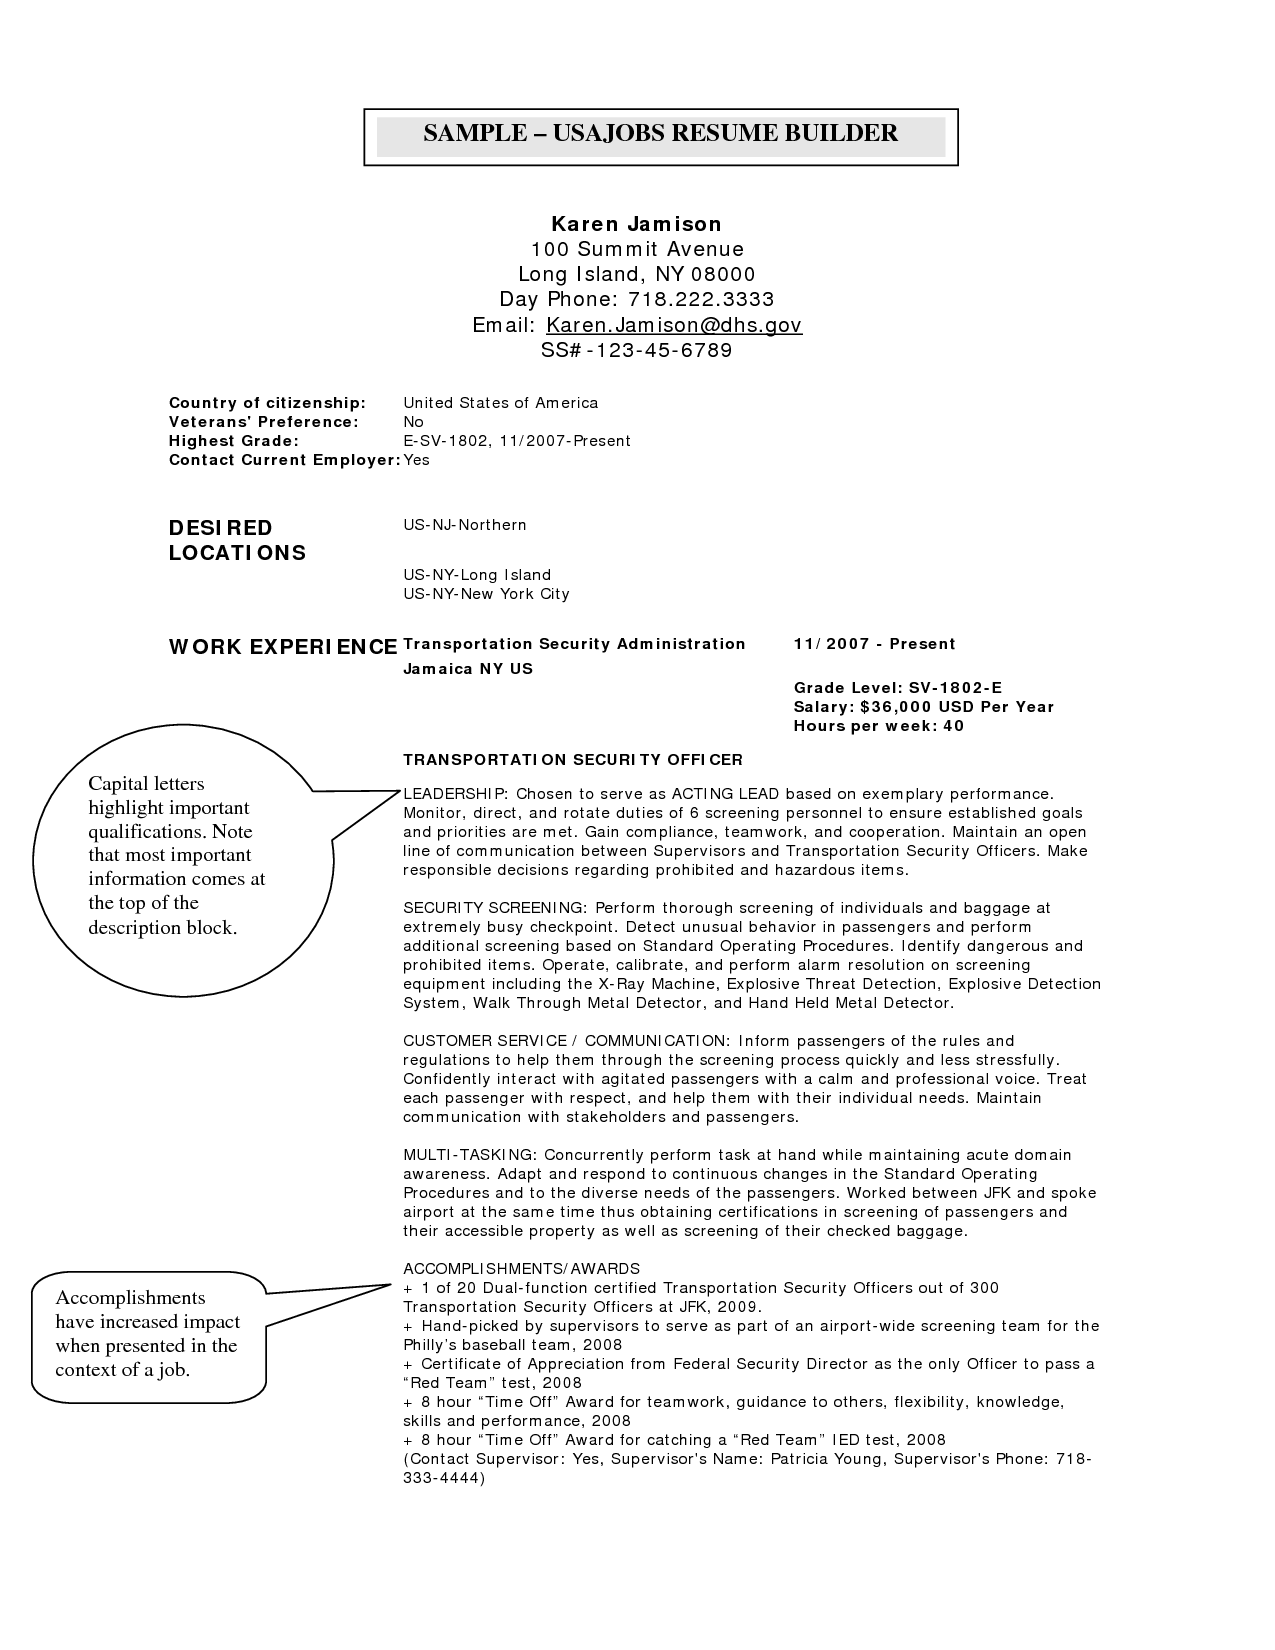 Security Jobs Resume Resume Format Usa Jobs  Pinterest  Resume Format Job Resume And .